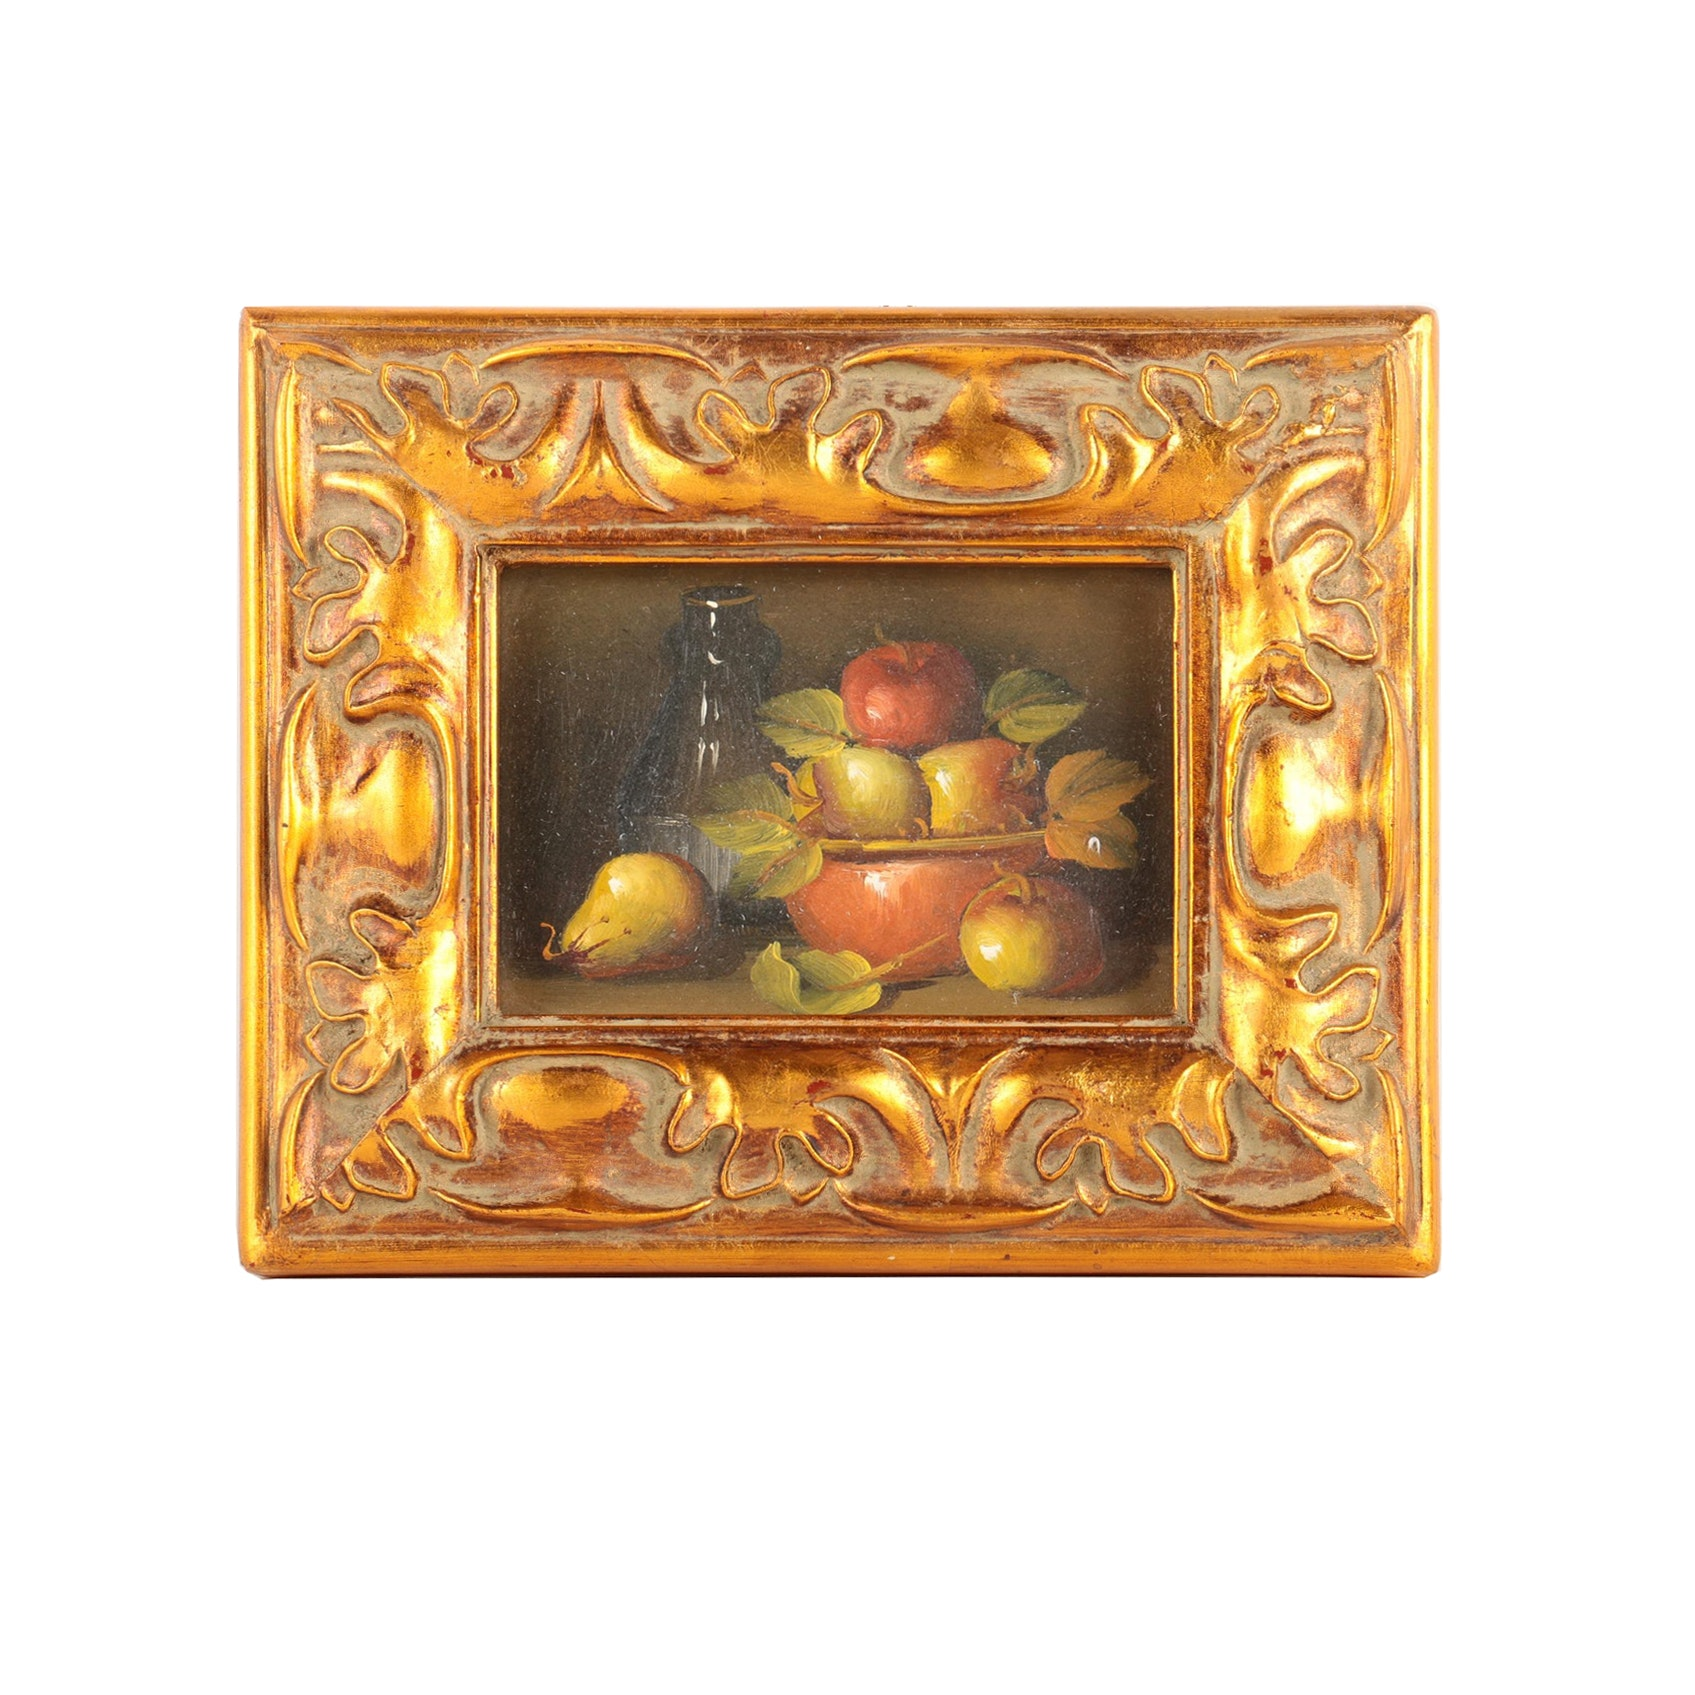 Oil Painting on Board of a Still Life